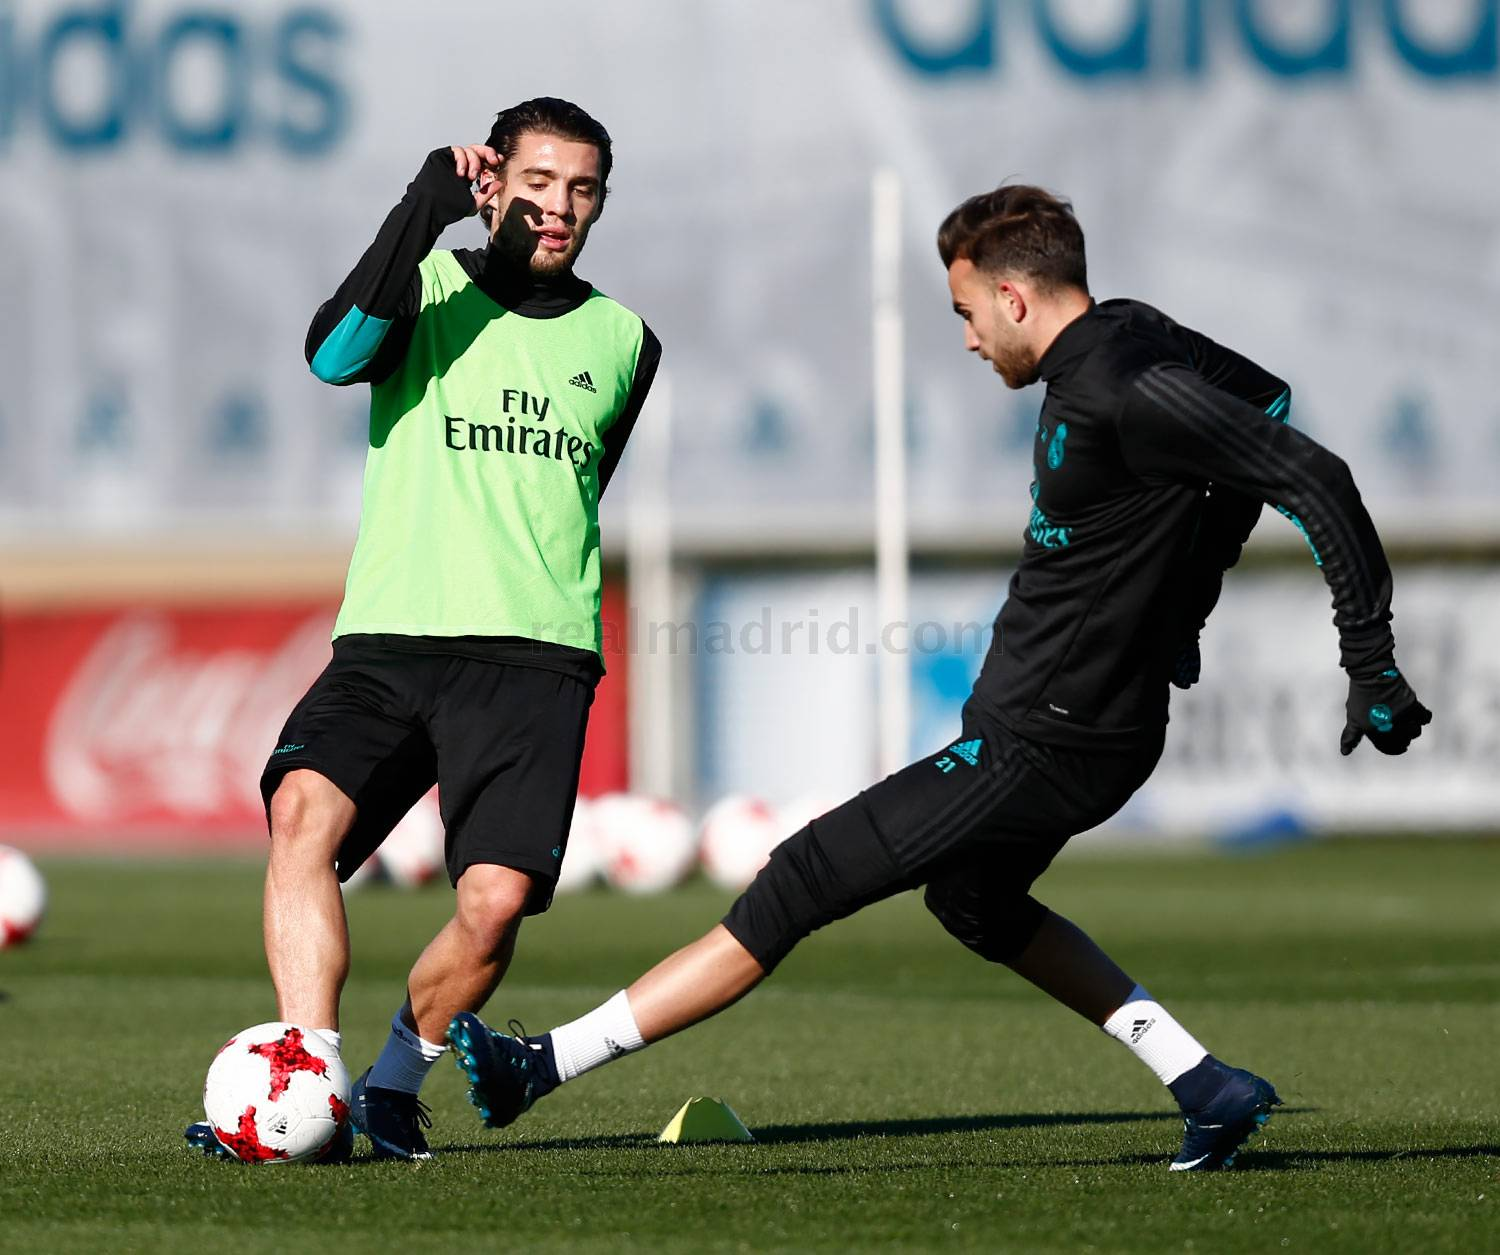 Real Madrid - Entrenamiento del Real Madrid - 26-11-2017